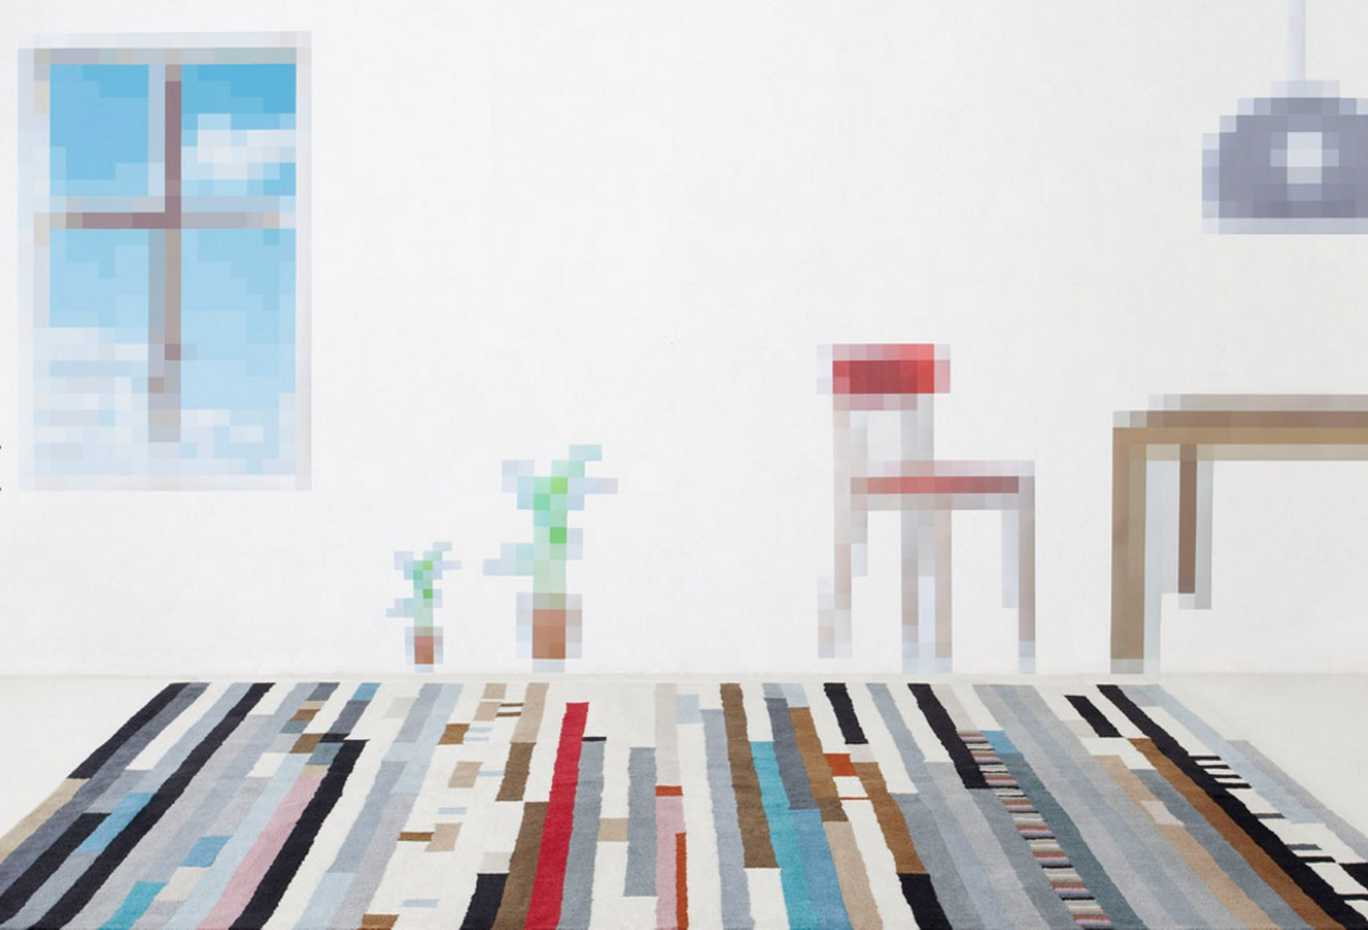 Lepark by Gan Rugs product image 2